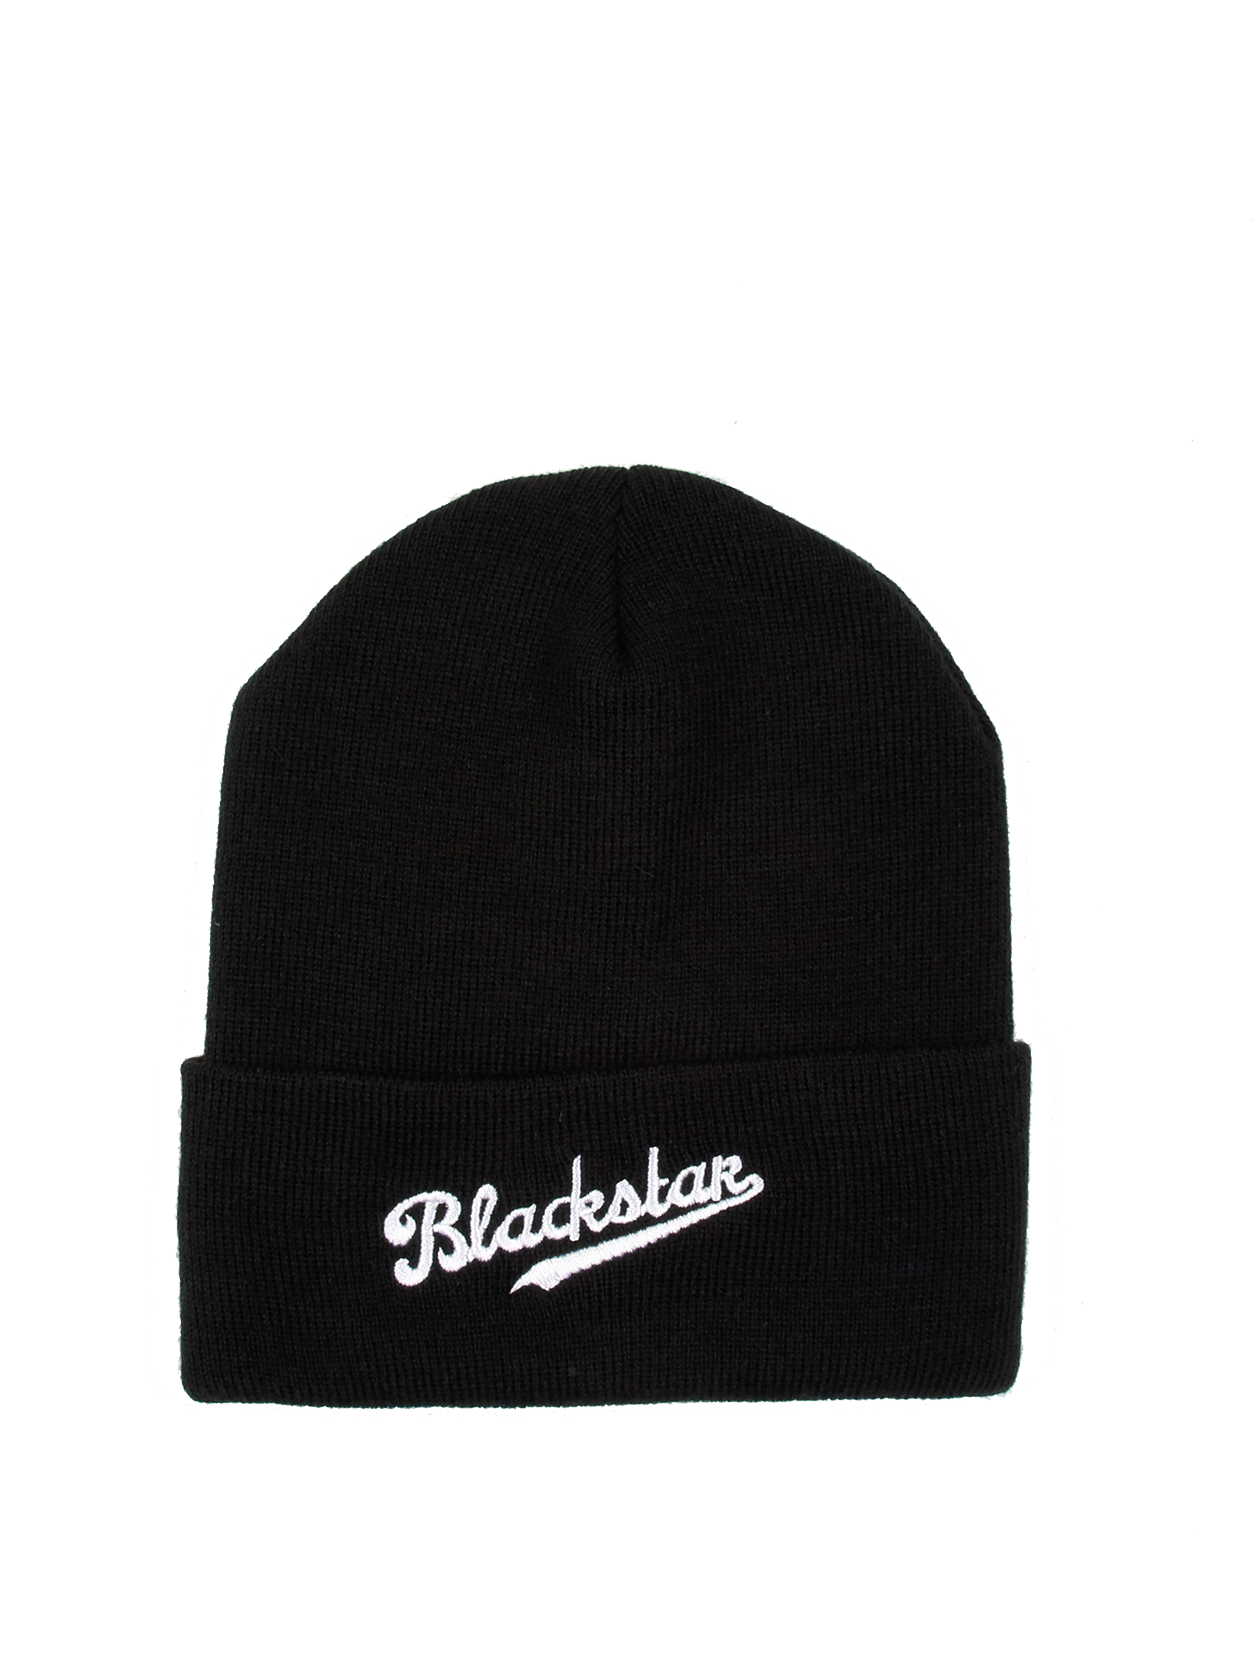 Unisex beanie ChampionUnisex beanie in by Black Star Wear. Turn-up brim with Blackstar embroidery. 100% acrylic. One size. Perfect for winter. Avaliable in black, burgundy, blue and light-blue.<br><br>size: One size<br>color: Black<br>gender: unisex